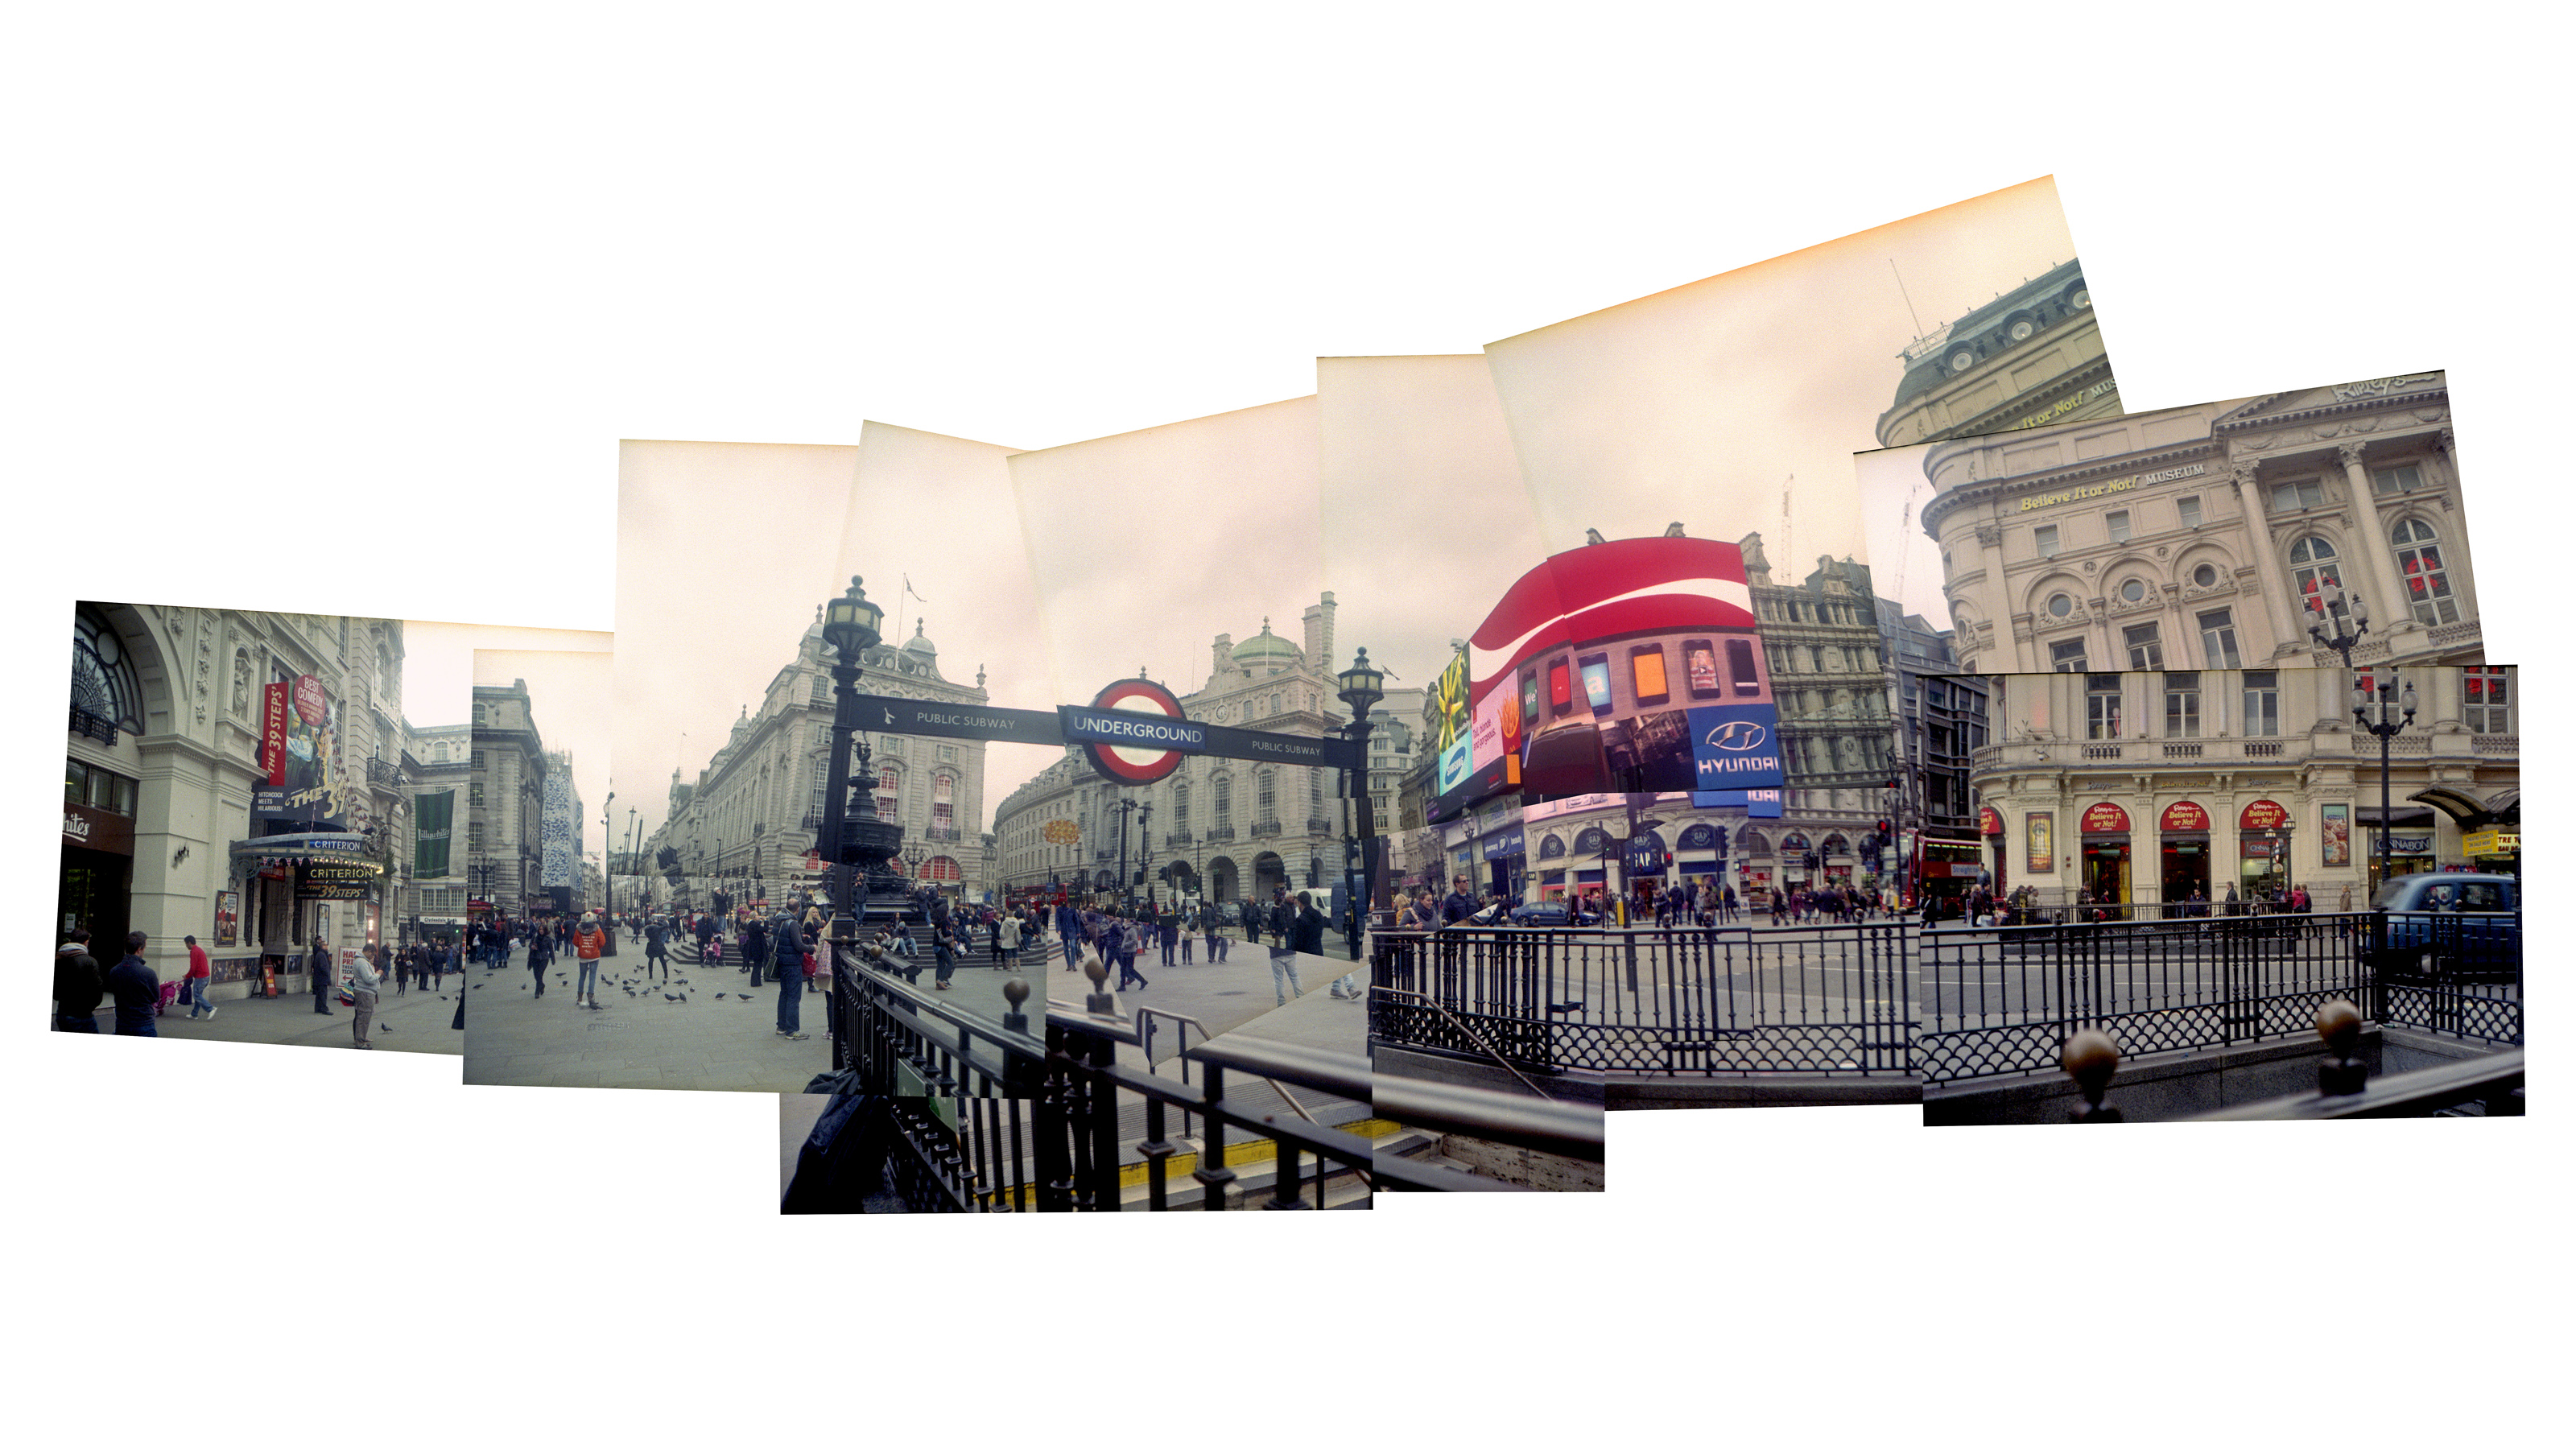 A photo of London's Piccadilly Circus taken on the Yashica Rapide camera